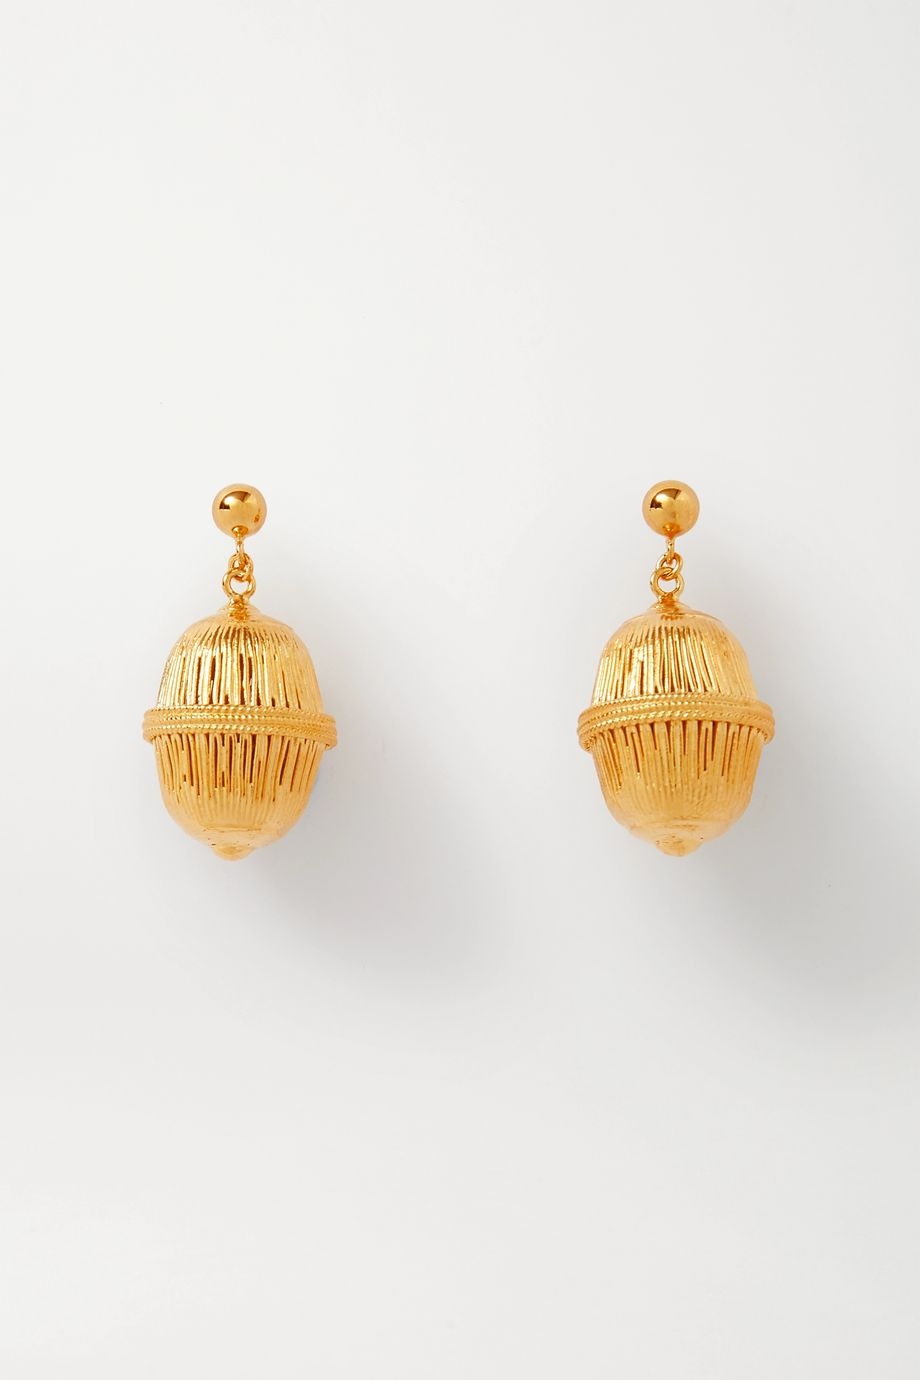 Soft Mountains Seeds gold vermeil earrings